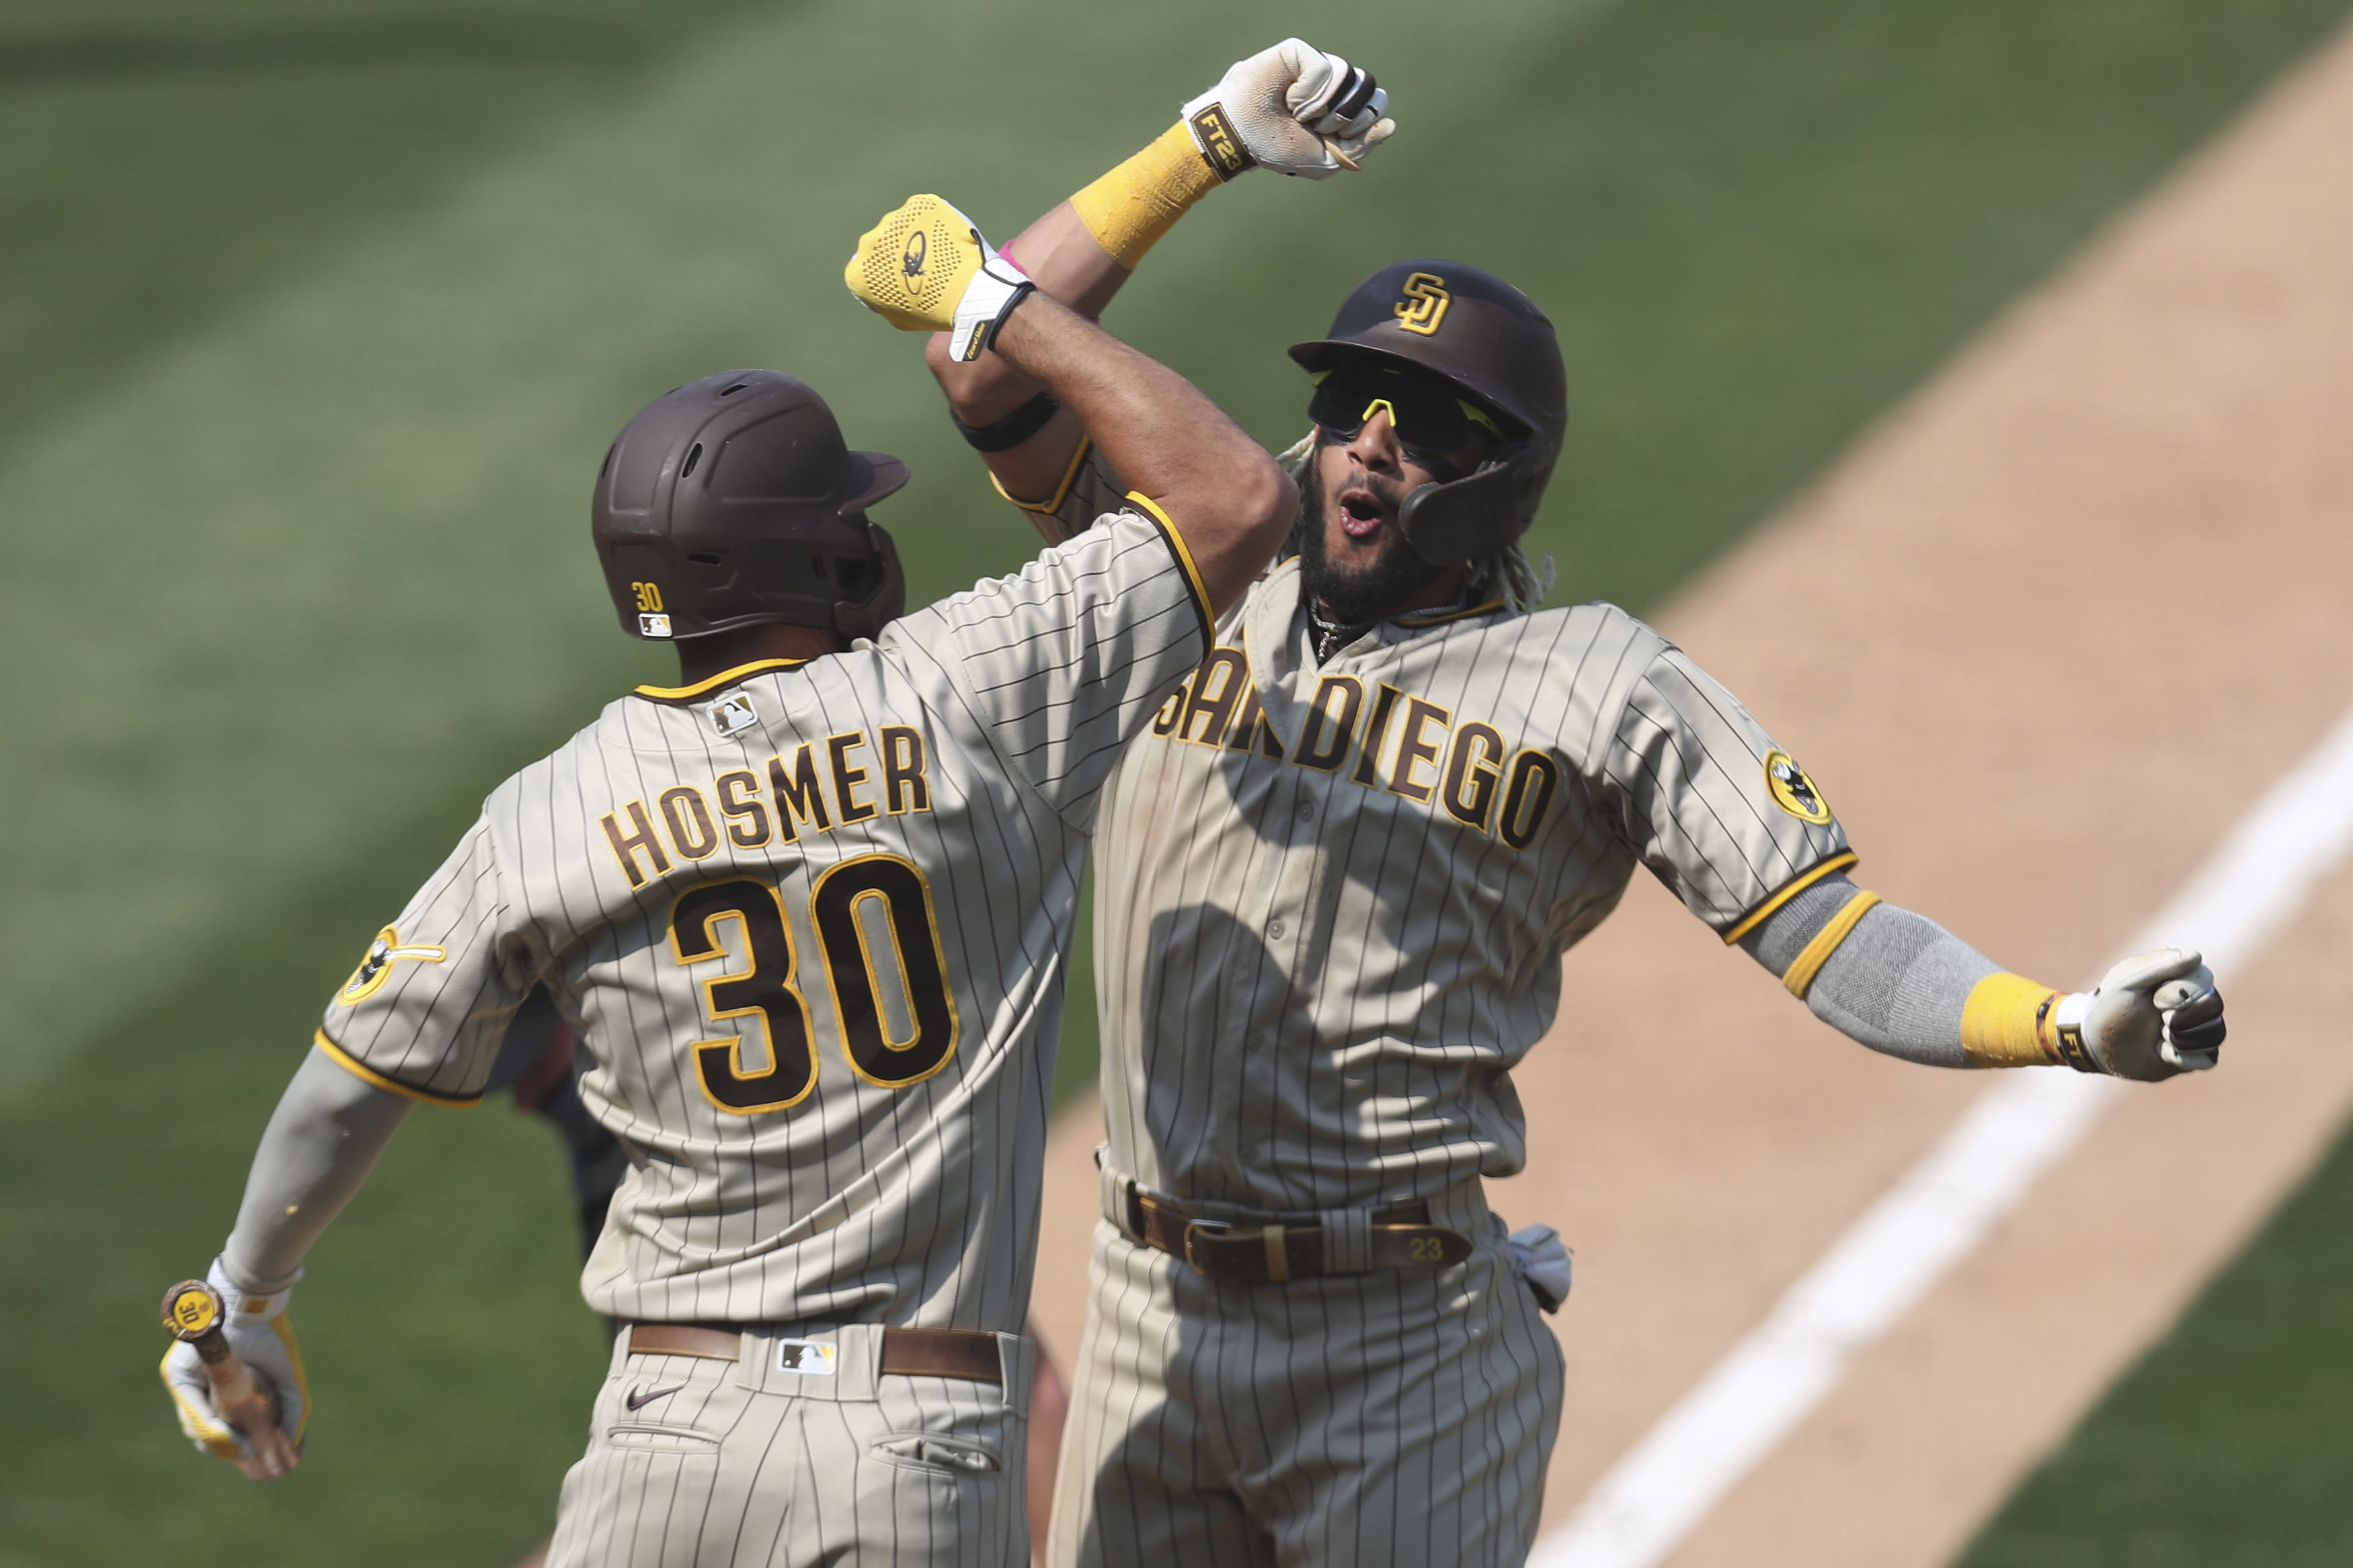 San Diego Padres' Fernando Tatis Jr celebrates after hitting a solo home run against the Oakland Athletics with teammate Eric Hosmer during the seventh inning of a baseball game in Oakland, Calif., Sunday, Sept. 6, 2020. (AP Photo/Jed Jacobsohn)